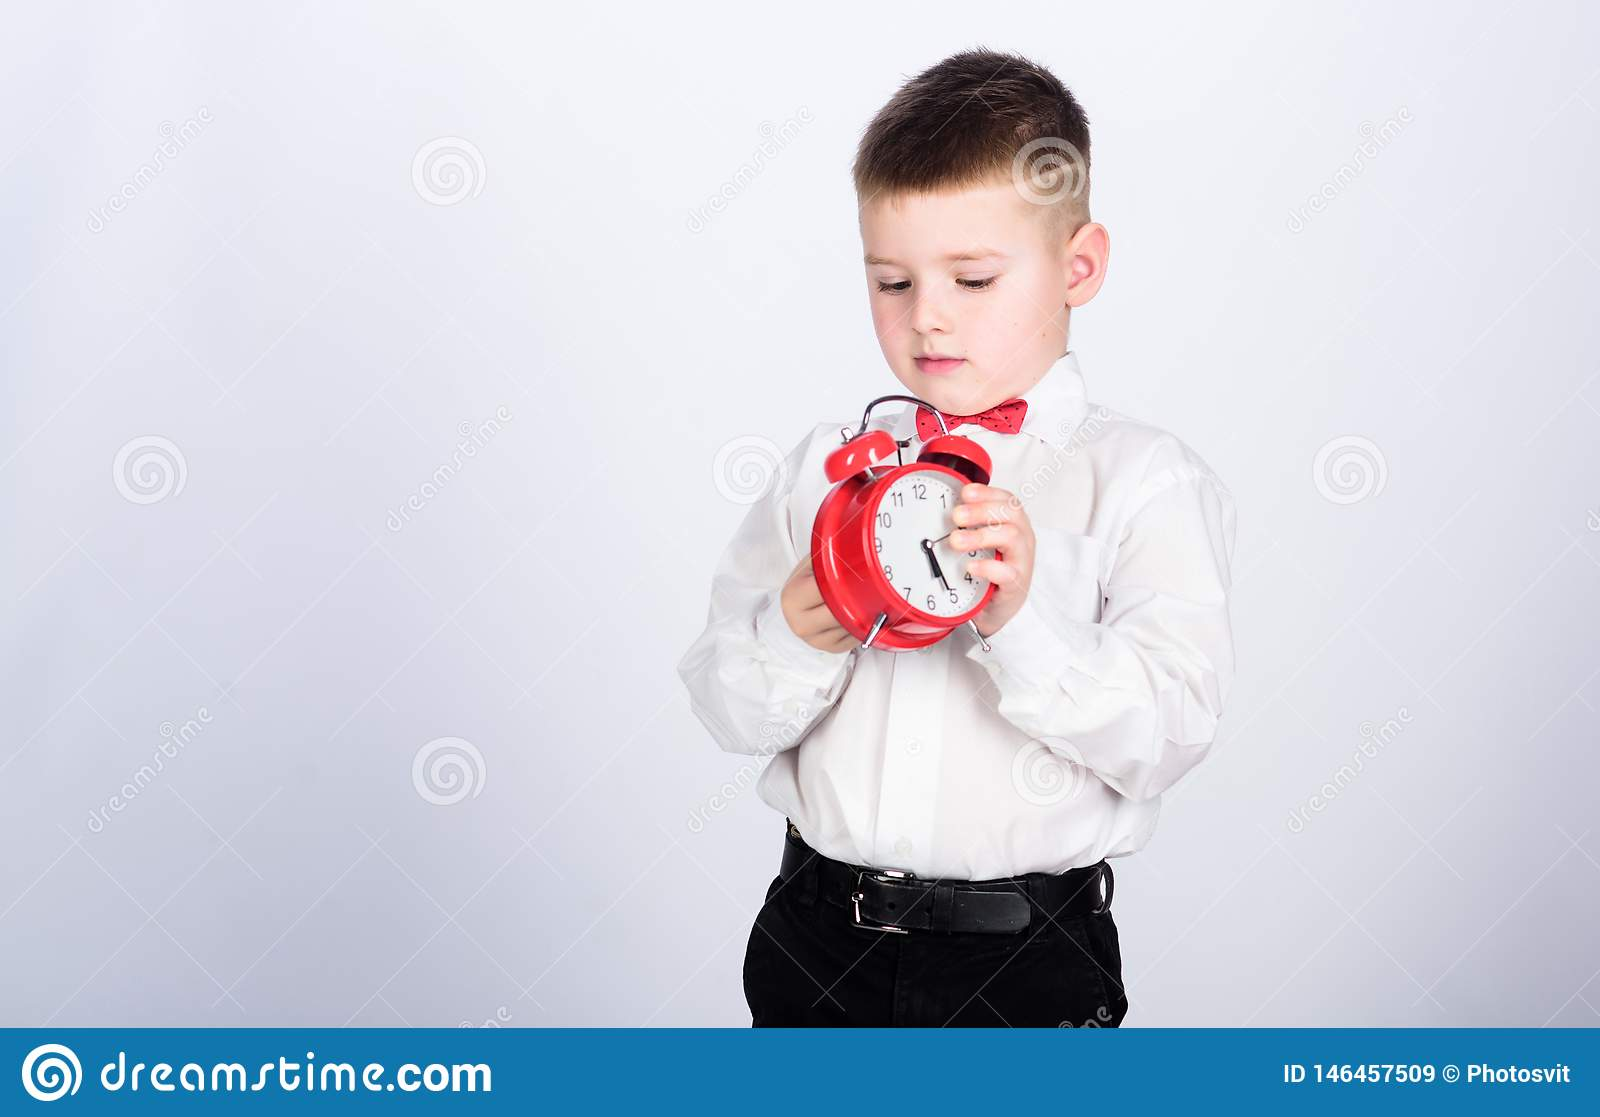 Schedule and timing. Morning routine. Schoolboy with alarm clock. Kid adorable boy white shirt red bow tie. Develop self